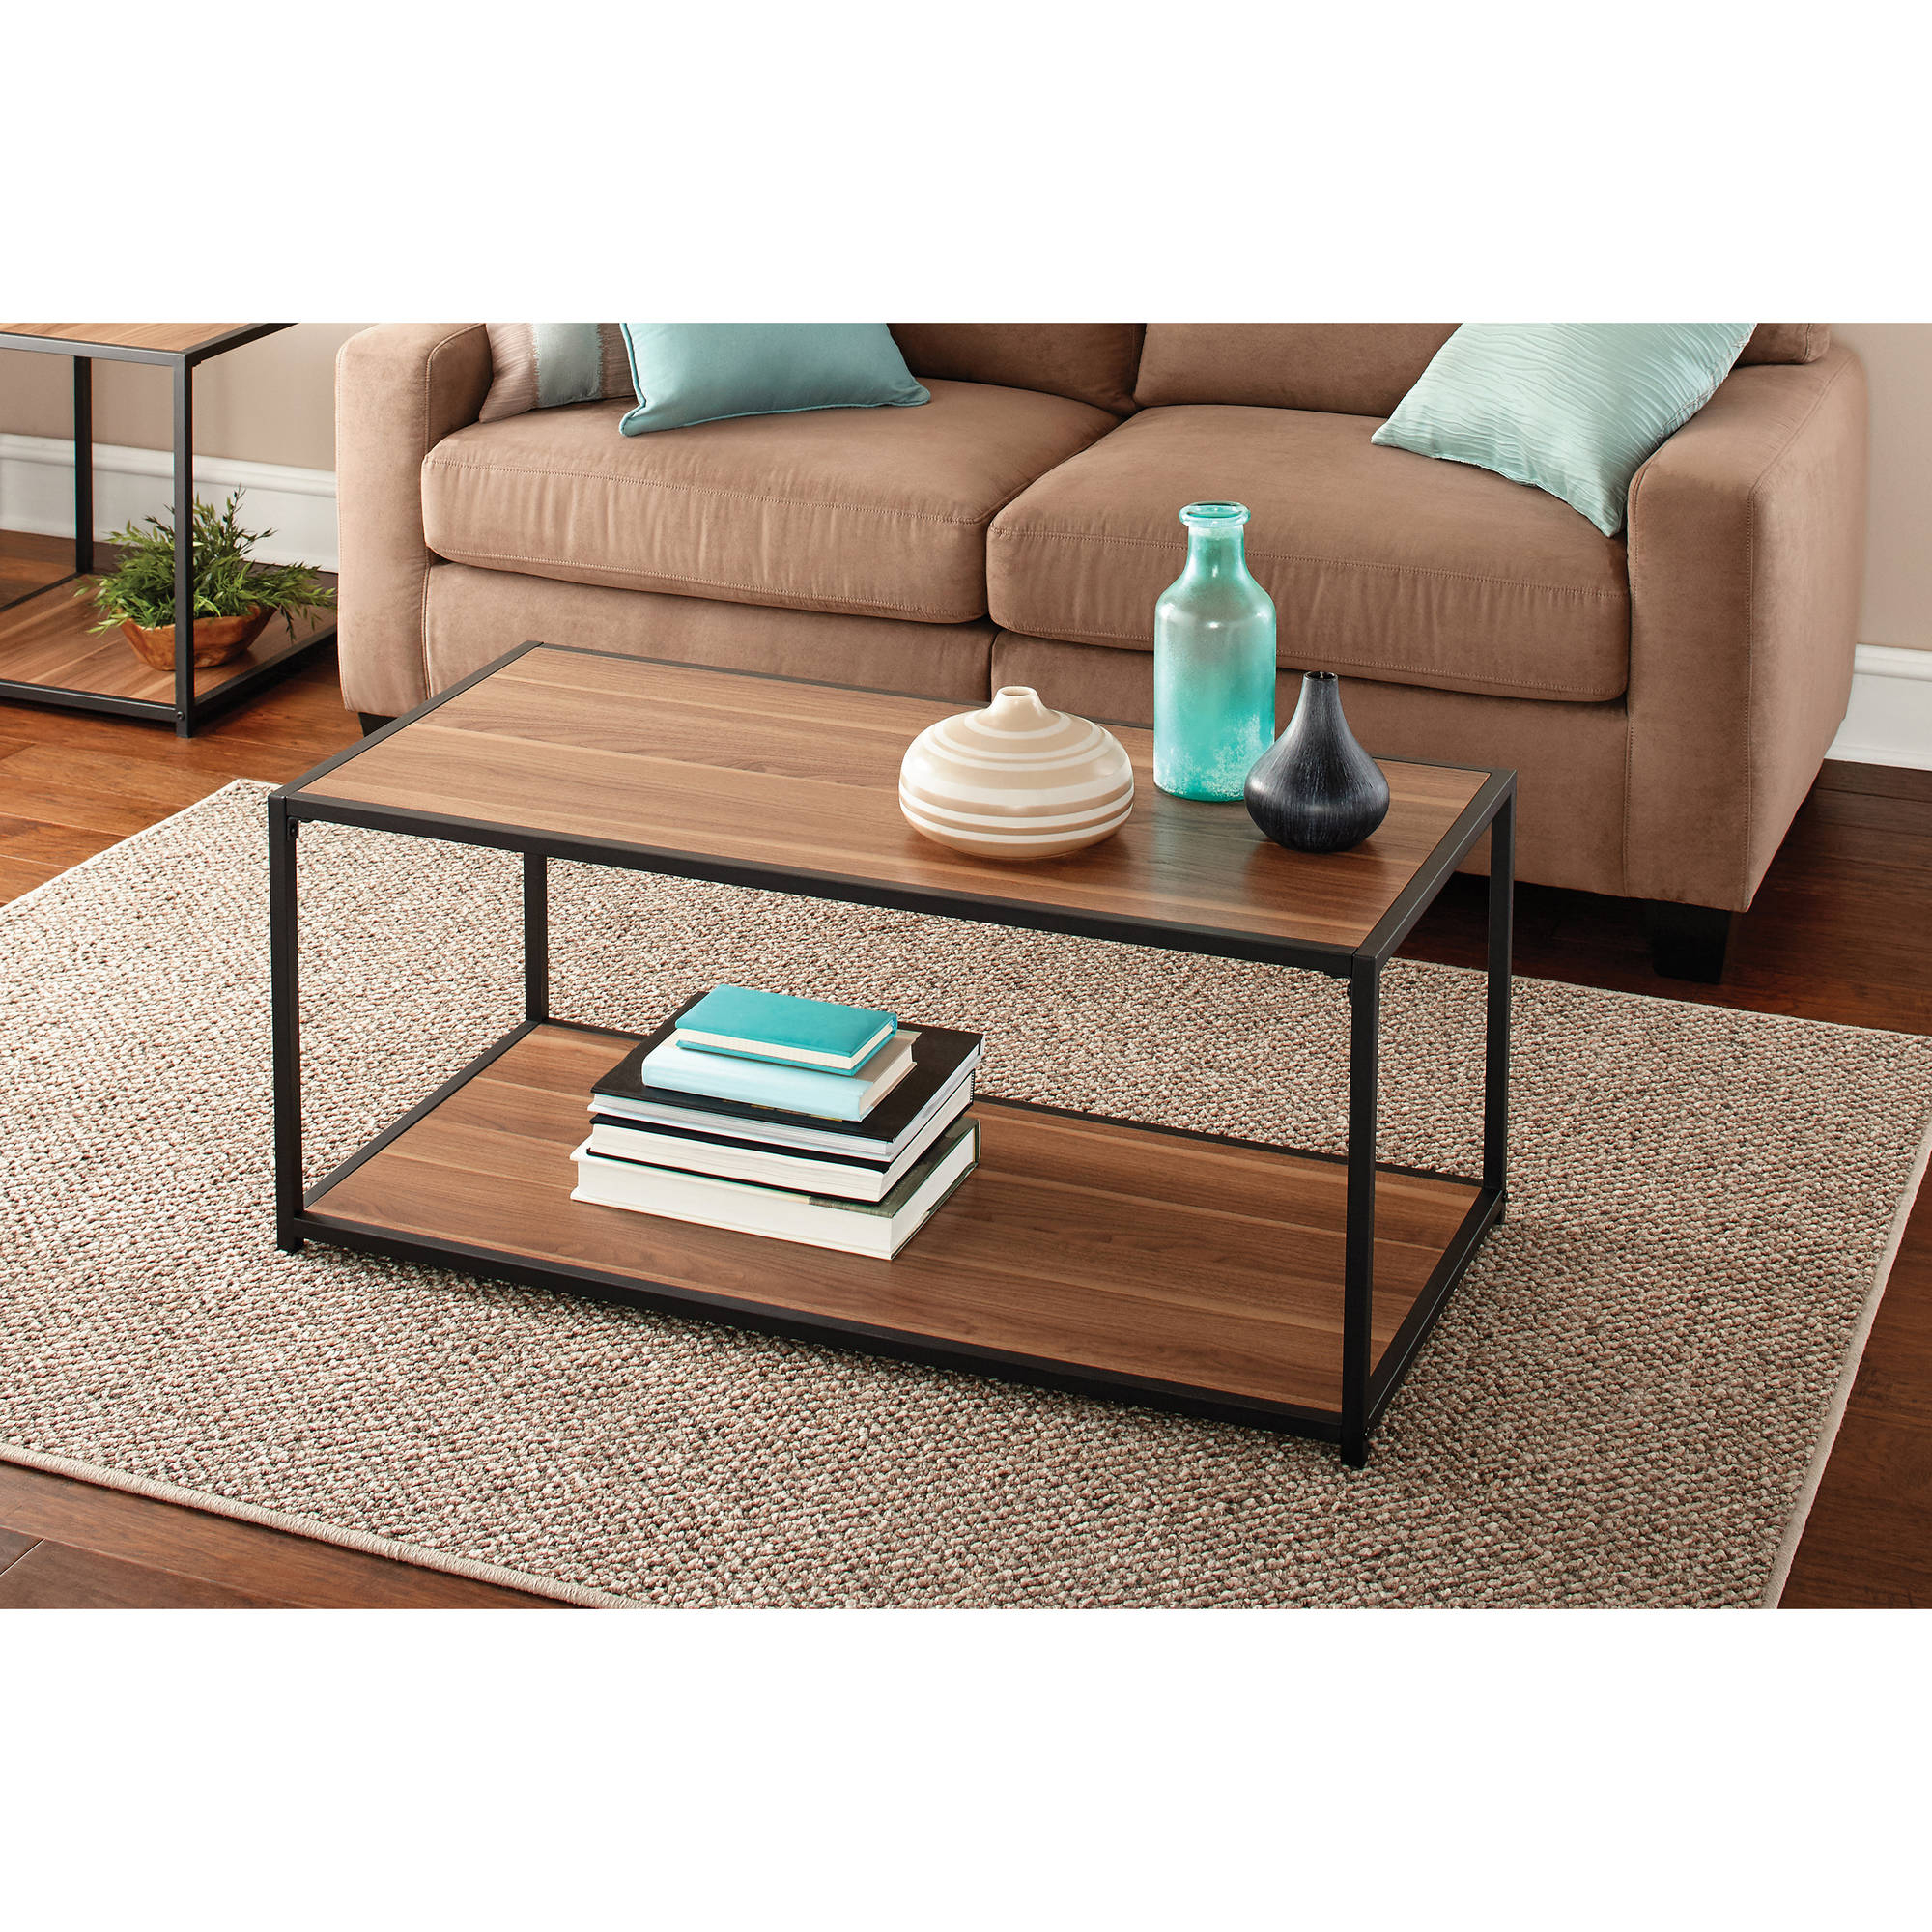 Mainstays Metro Coffee Table Multiple Finishes intended for Walmart Living Room Sets